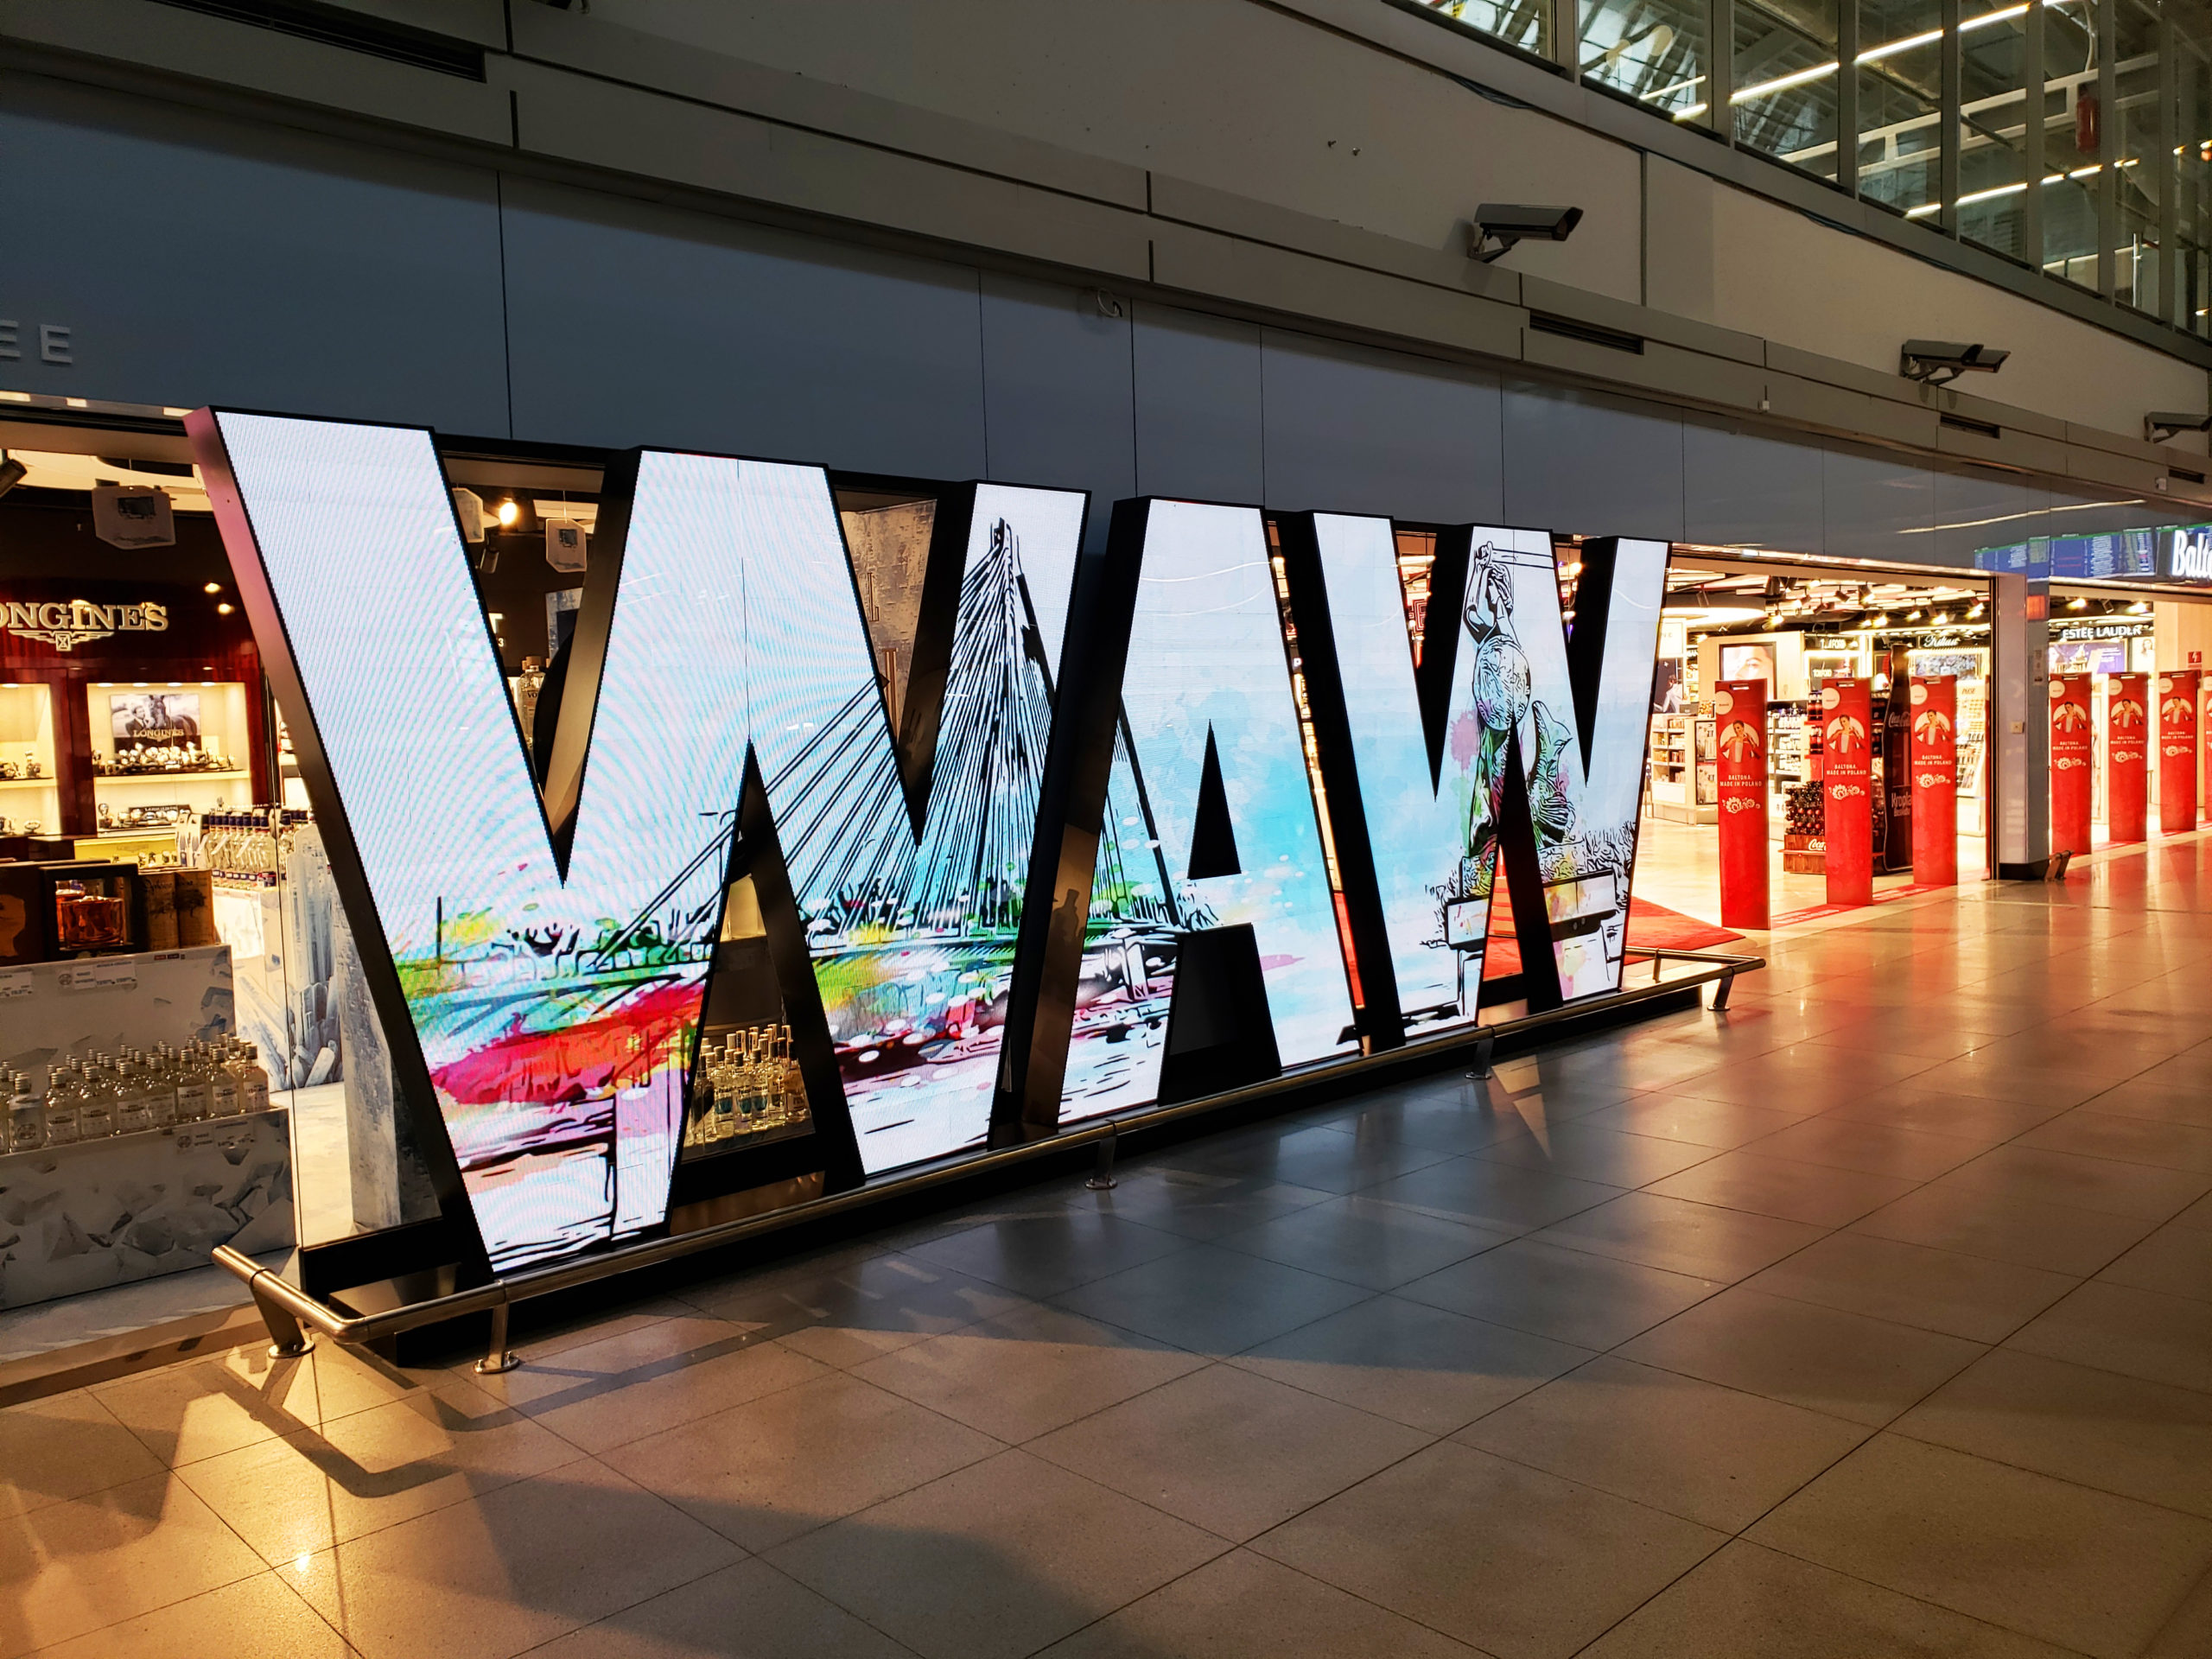 Travelling Internationally During Covid-19: My Experience & What To Expect